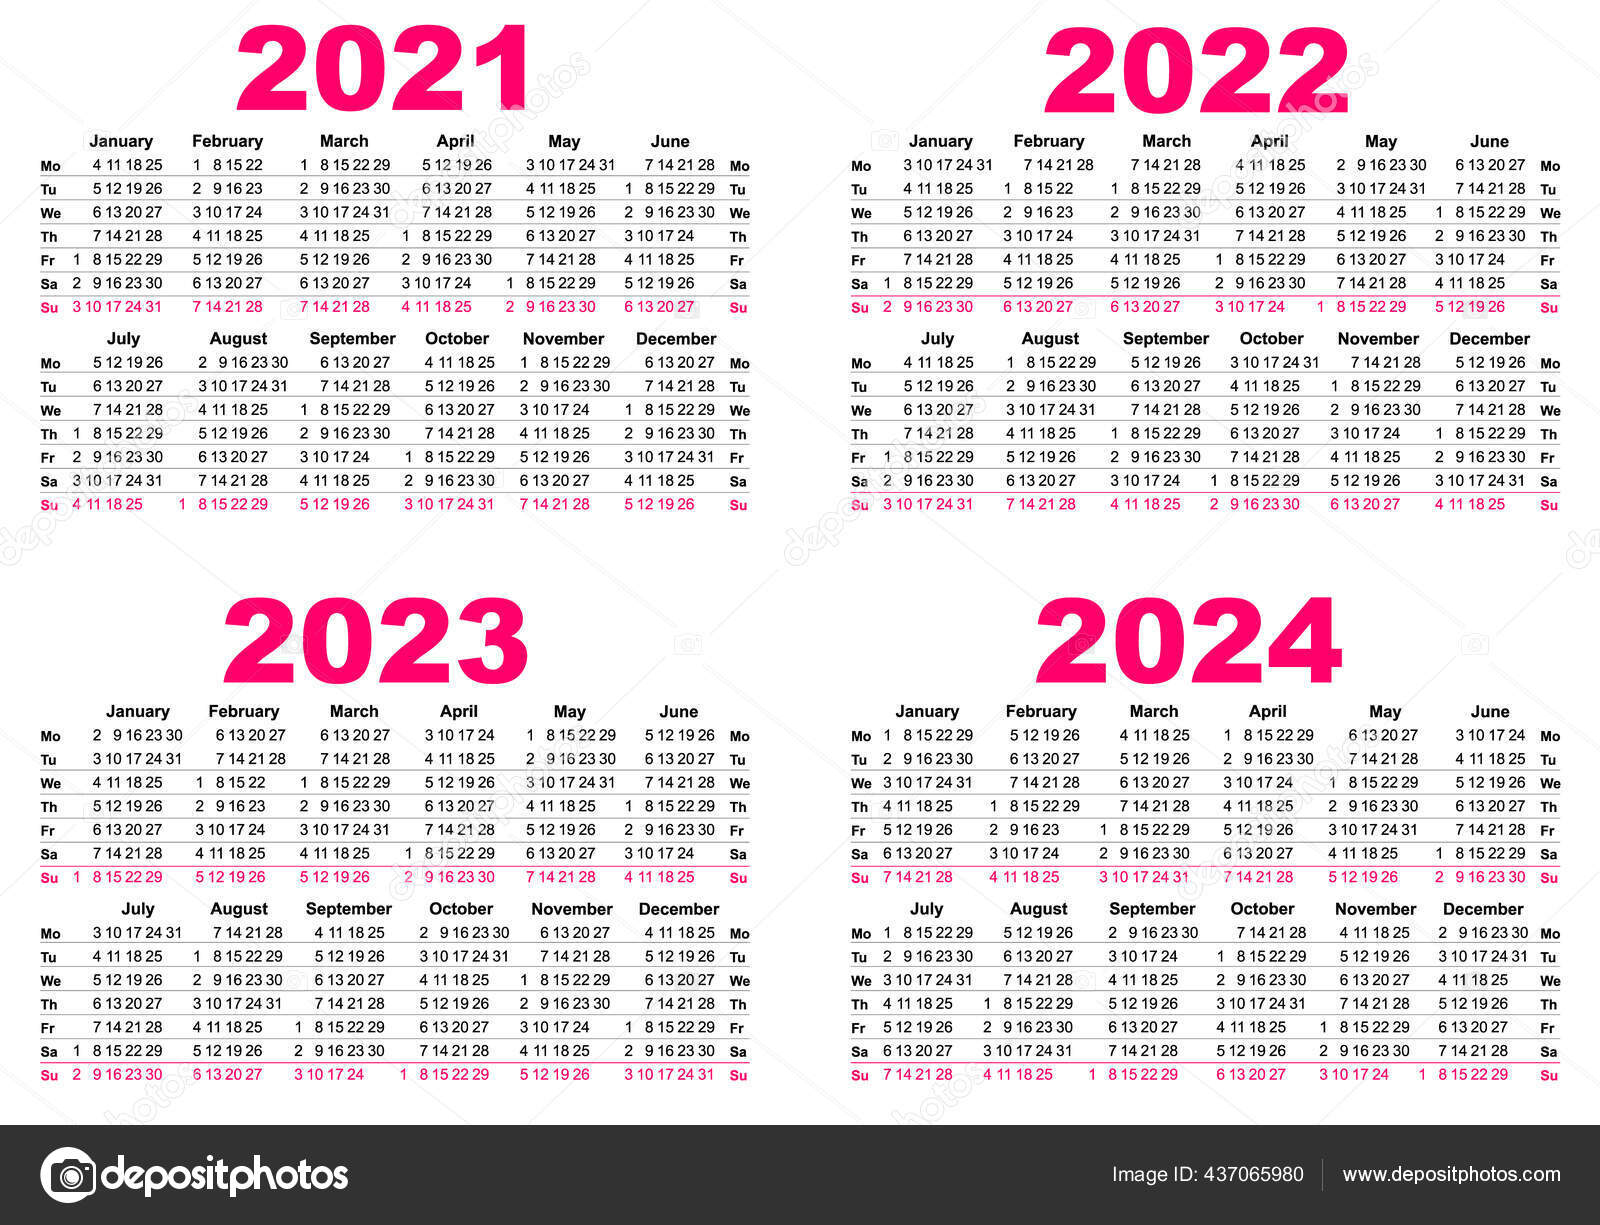 Oregon State University Academic Calendar 2022 2023.First Day Of Fall 2023